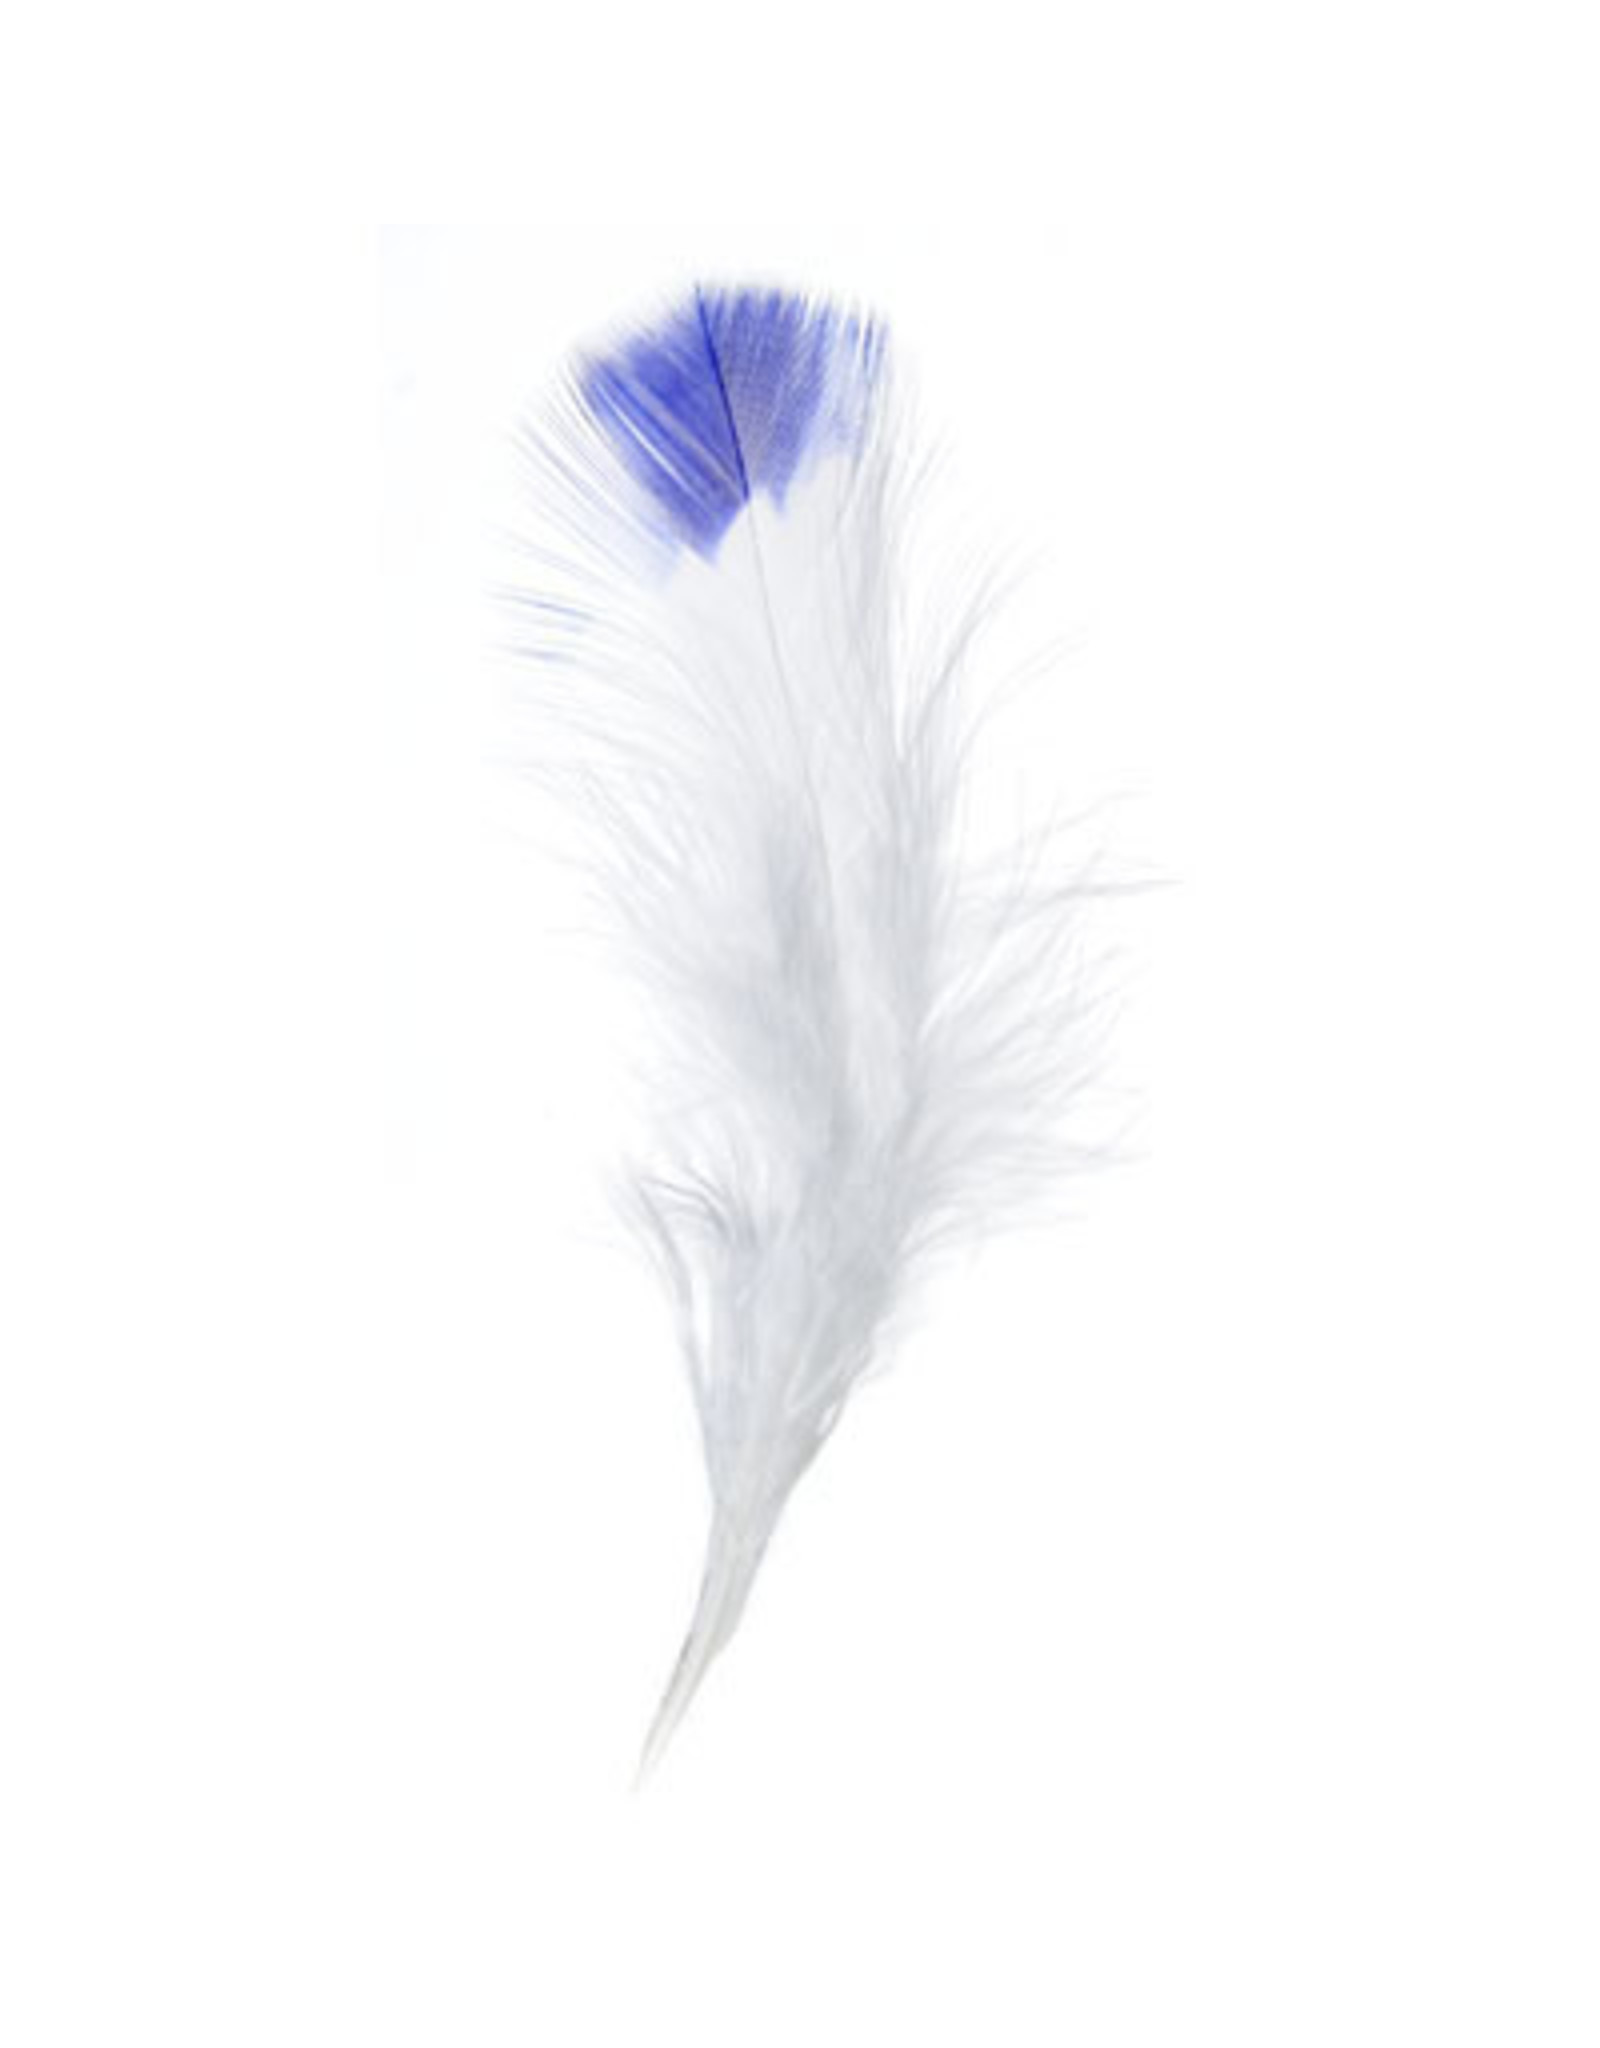 Marabou Feathers 4-6in White Royal Blue Tip  6g